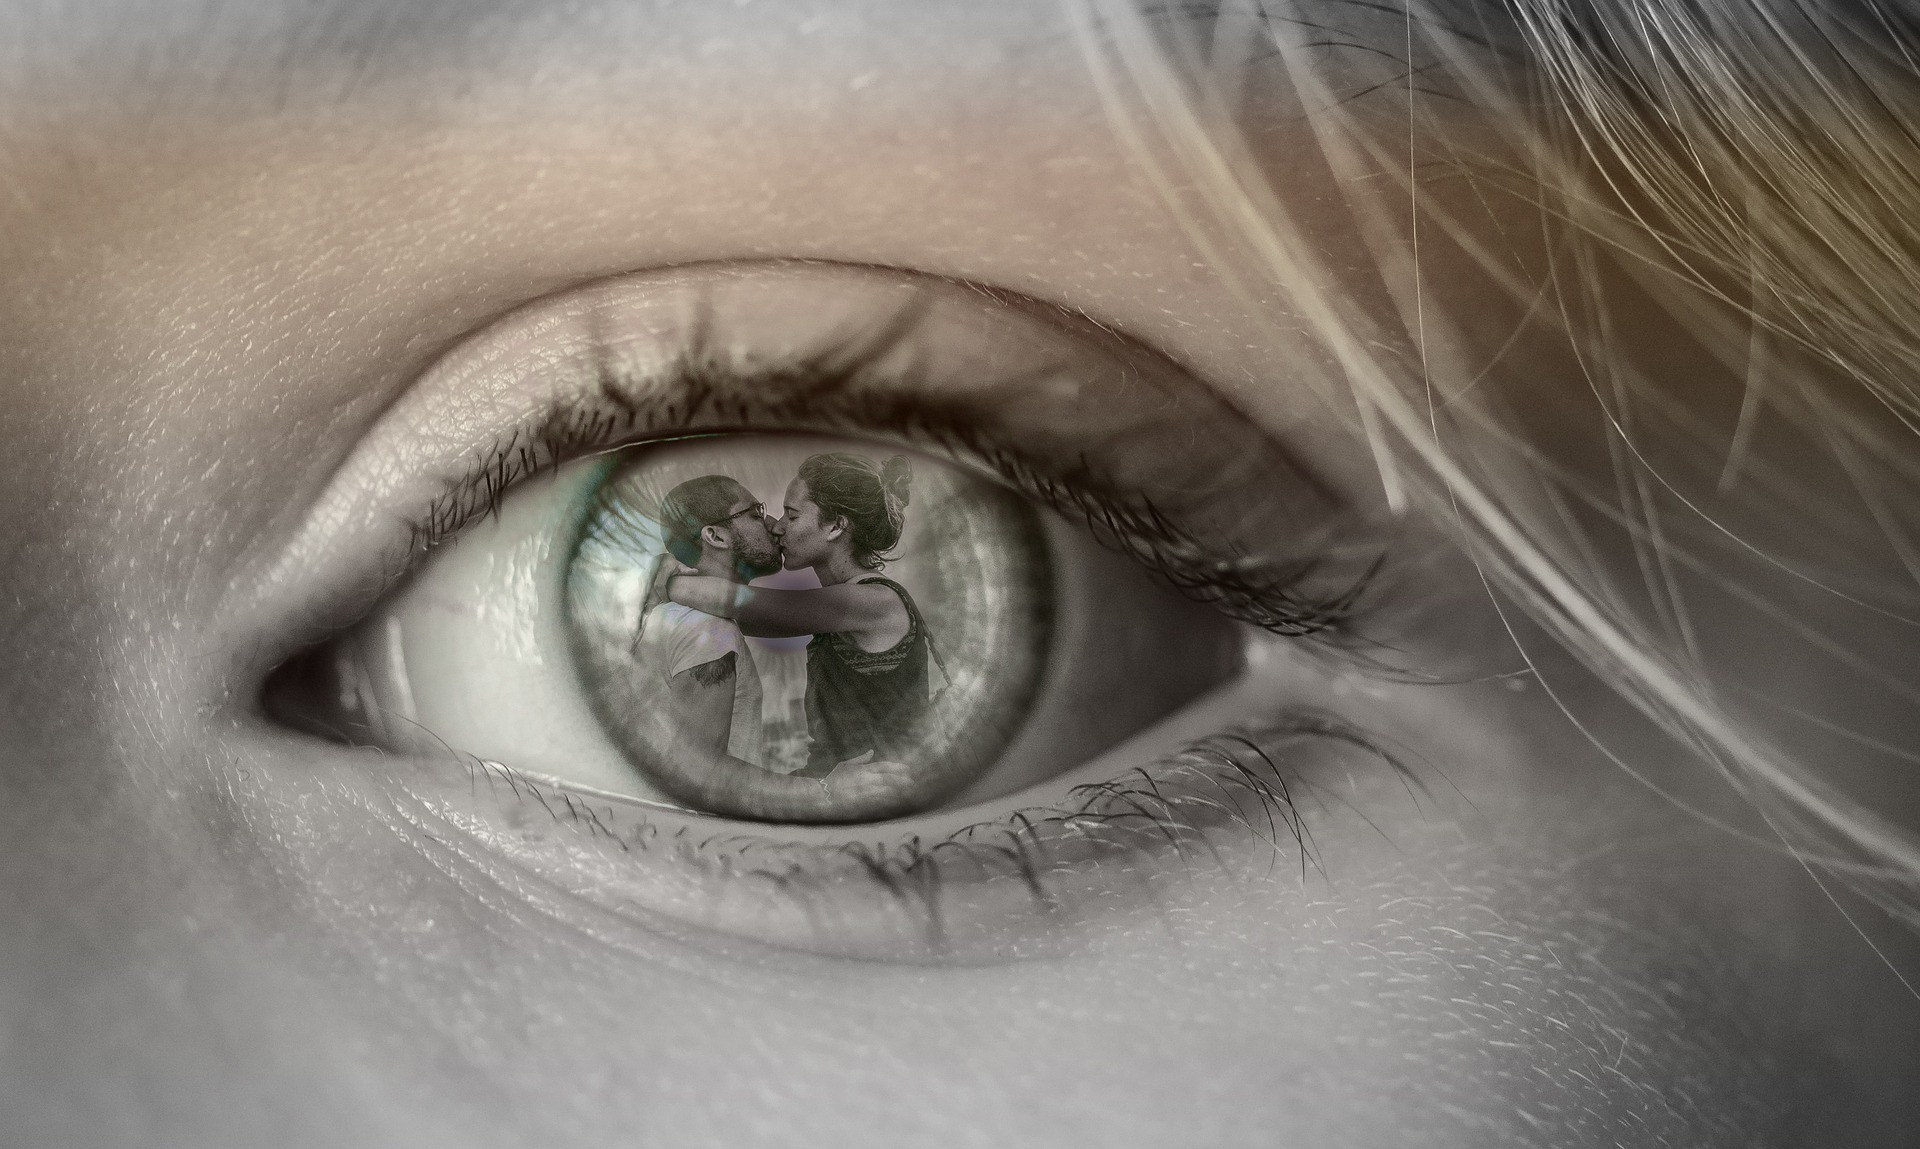 Close Up of Woman's eye with lovers reflection as the pupil